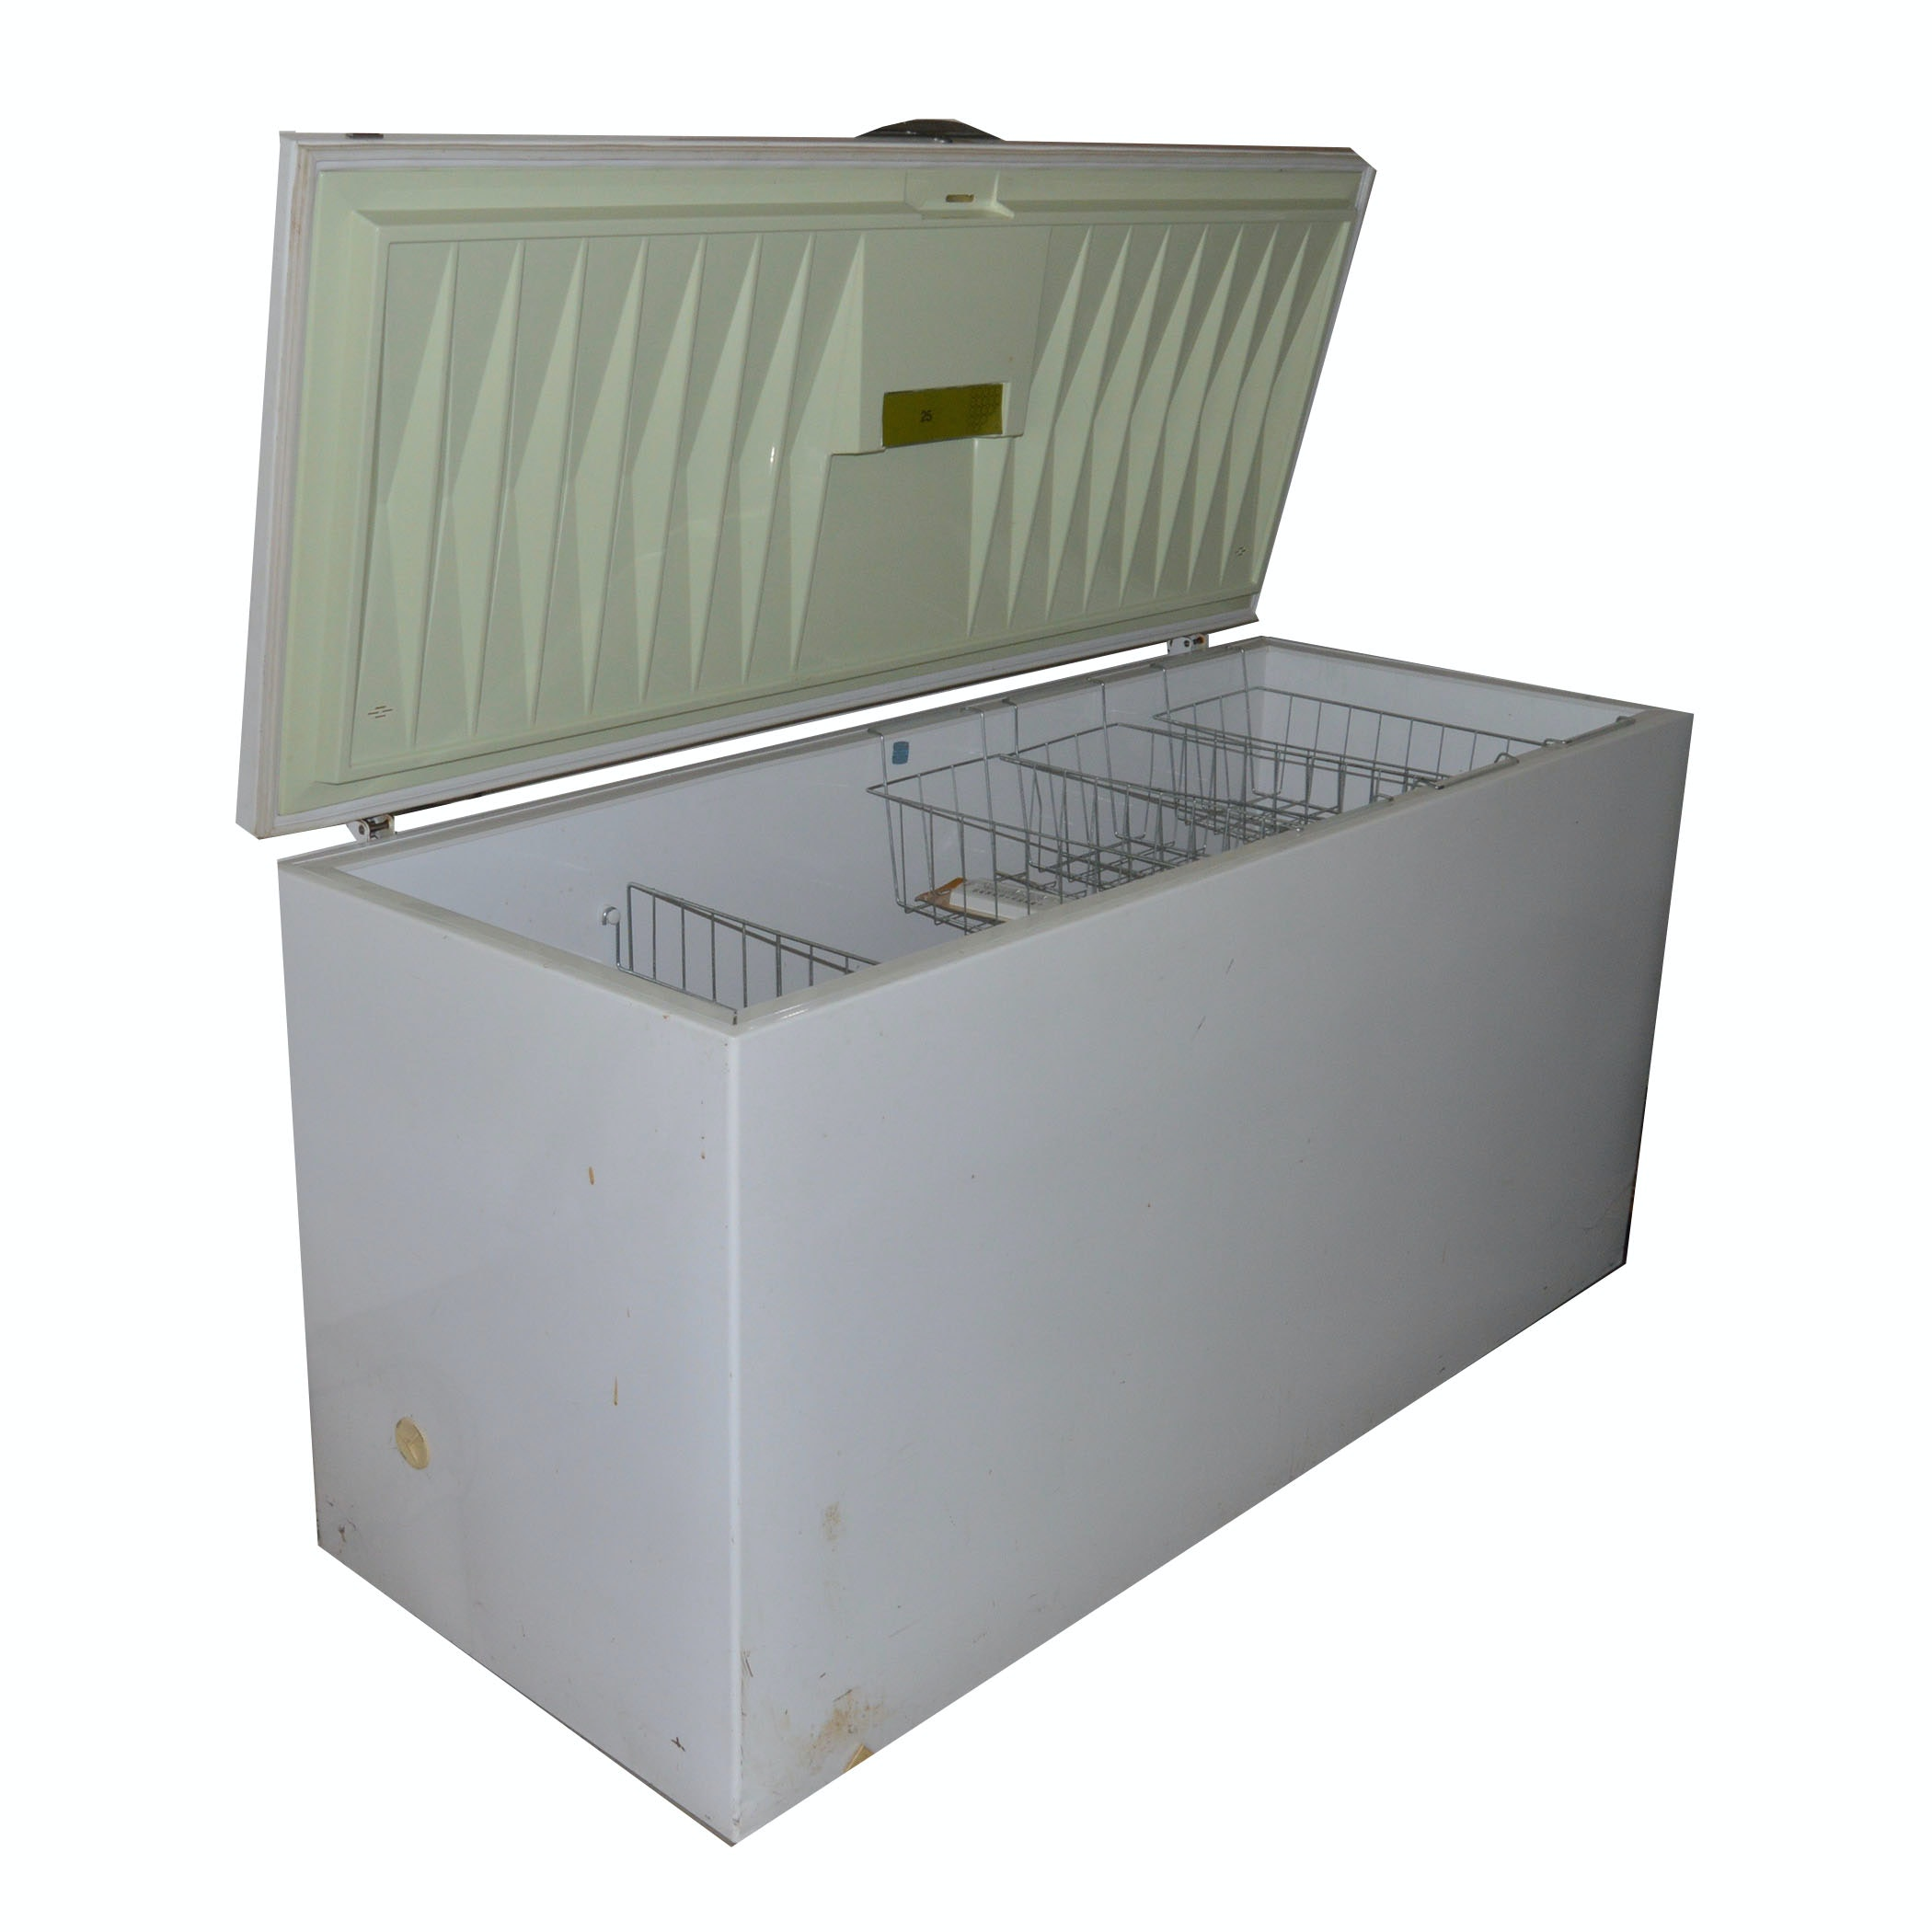 jc penney horizontal freezer - Chest Freezers On Sale